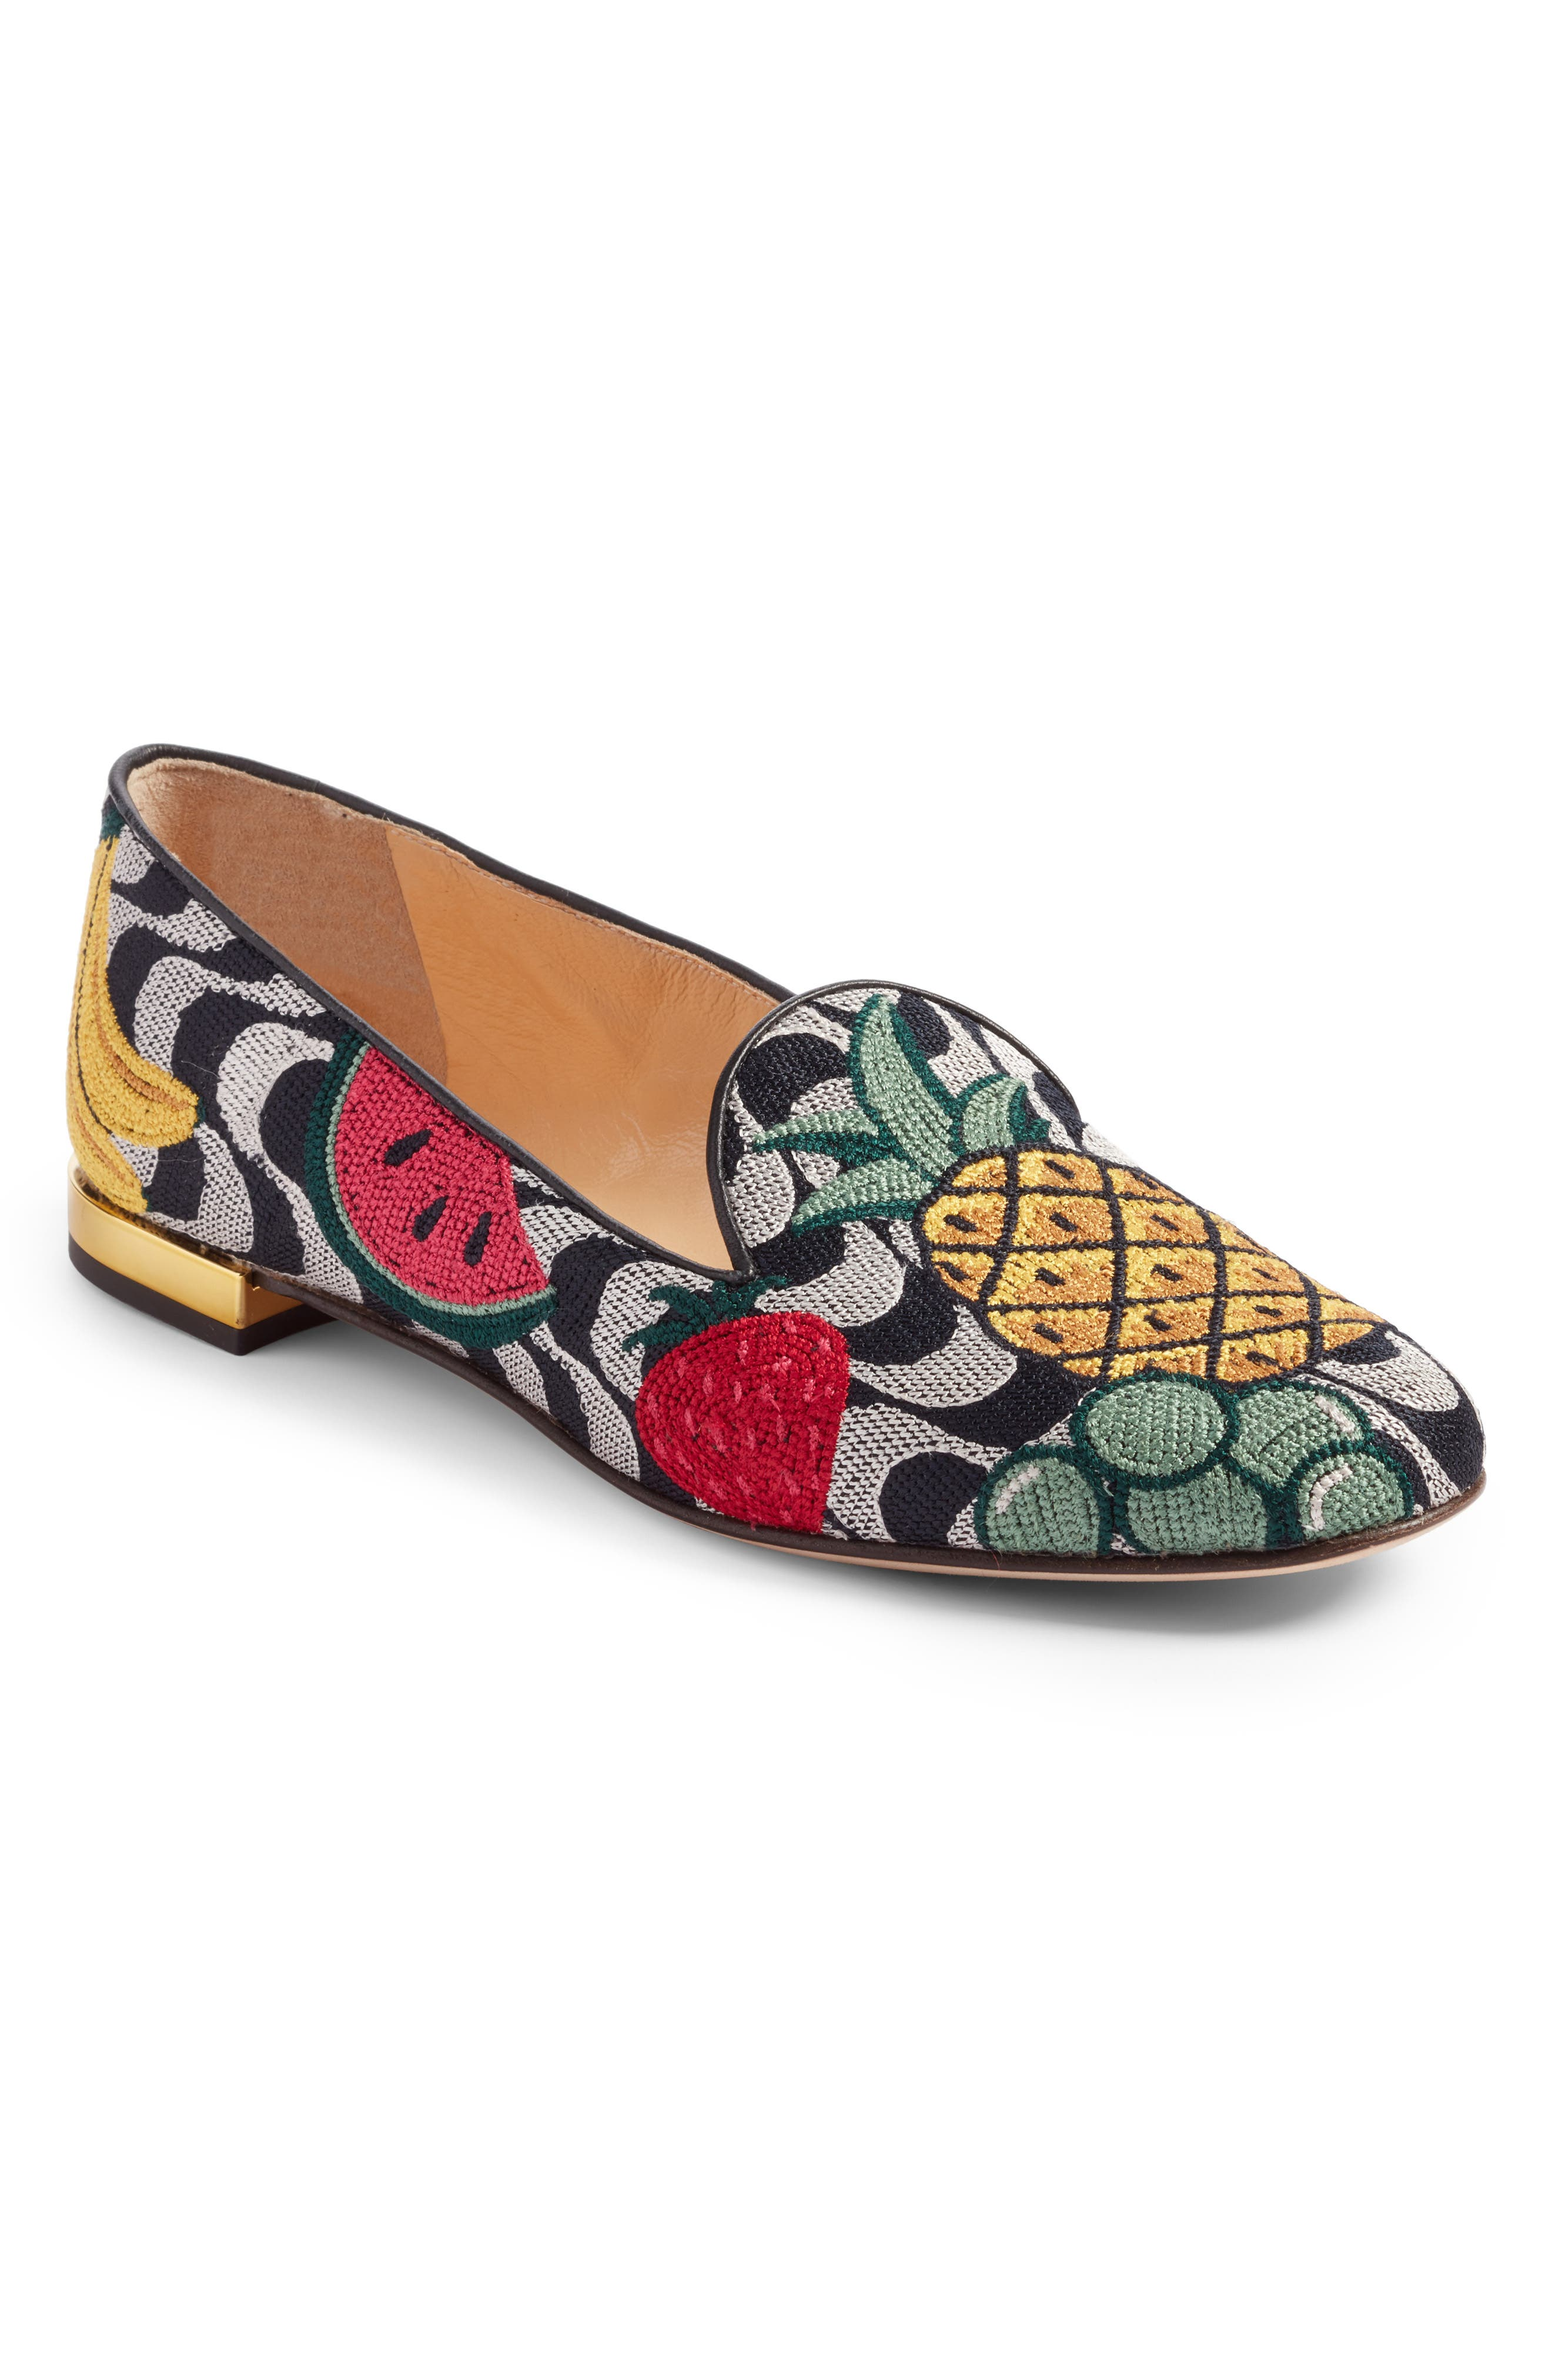 Charlotte Olympia Fruit Salad Slipper Loafer (Women)